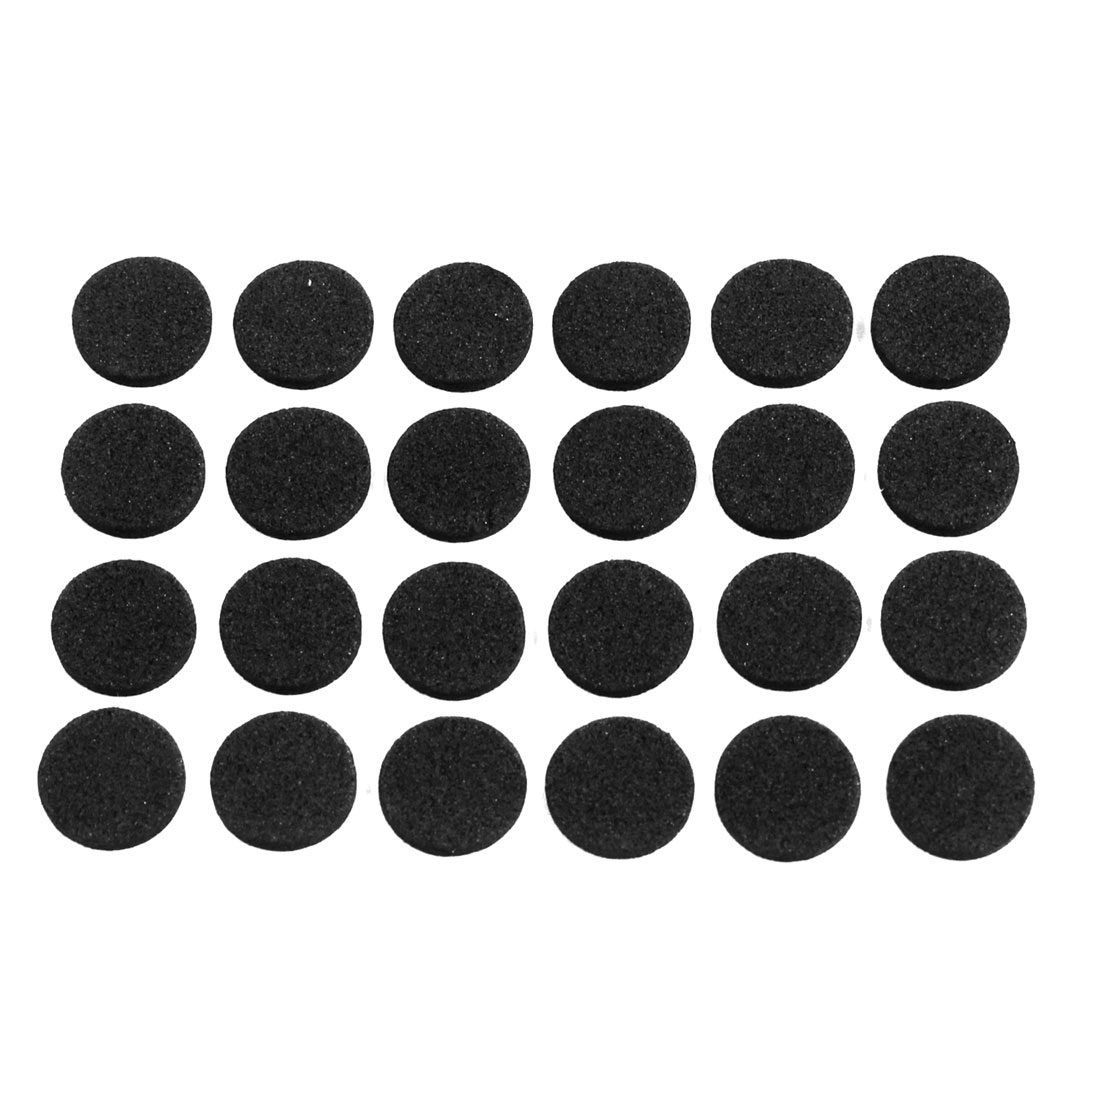 Self-adhesive Round Shape Black Furniture Protection Cushion Pads Mat 24 Pcs